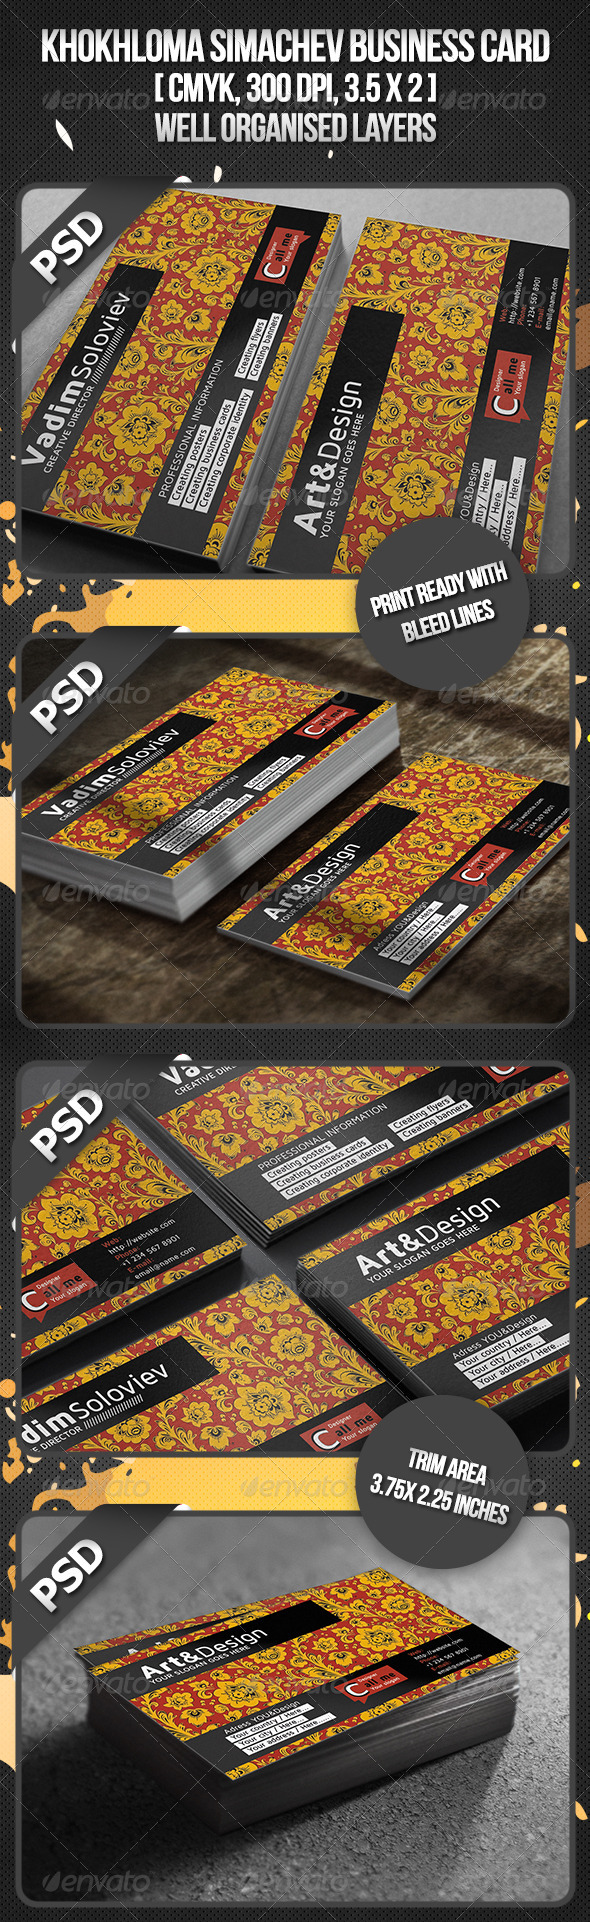 Khokhloma Simachev Business Card - Business Cards Print Templates